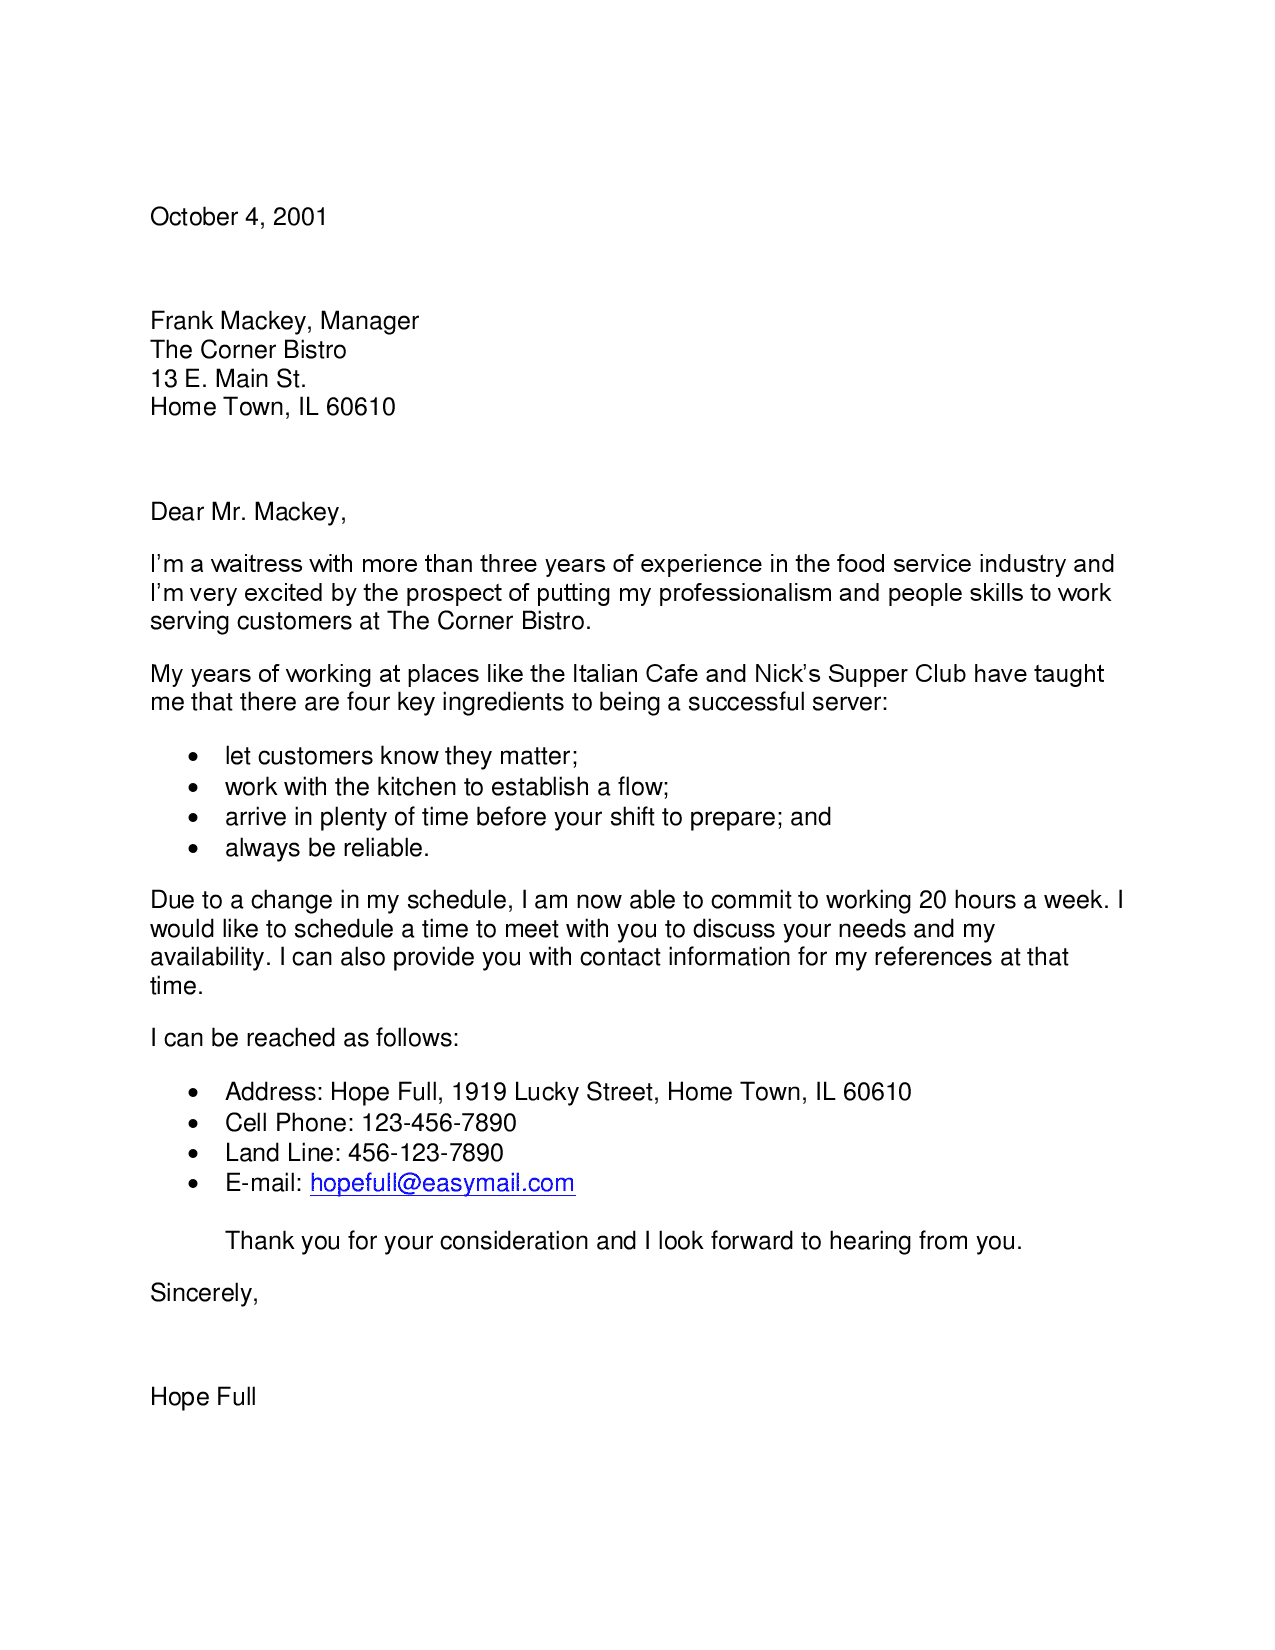 restaurant manager cover letter examples  free cover letter       product manager cover